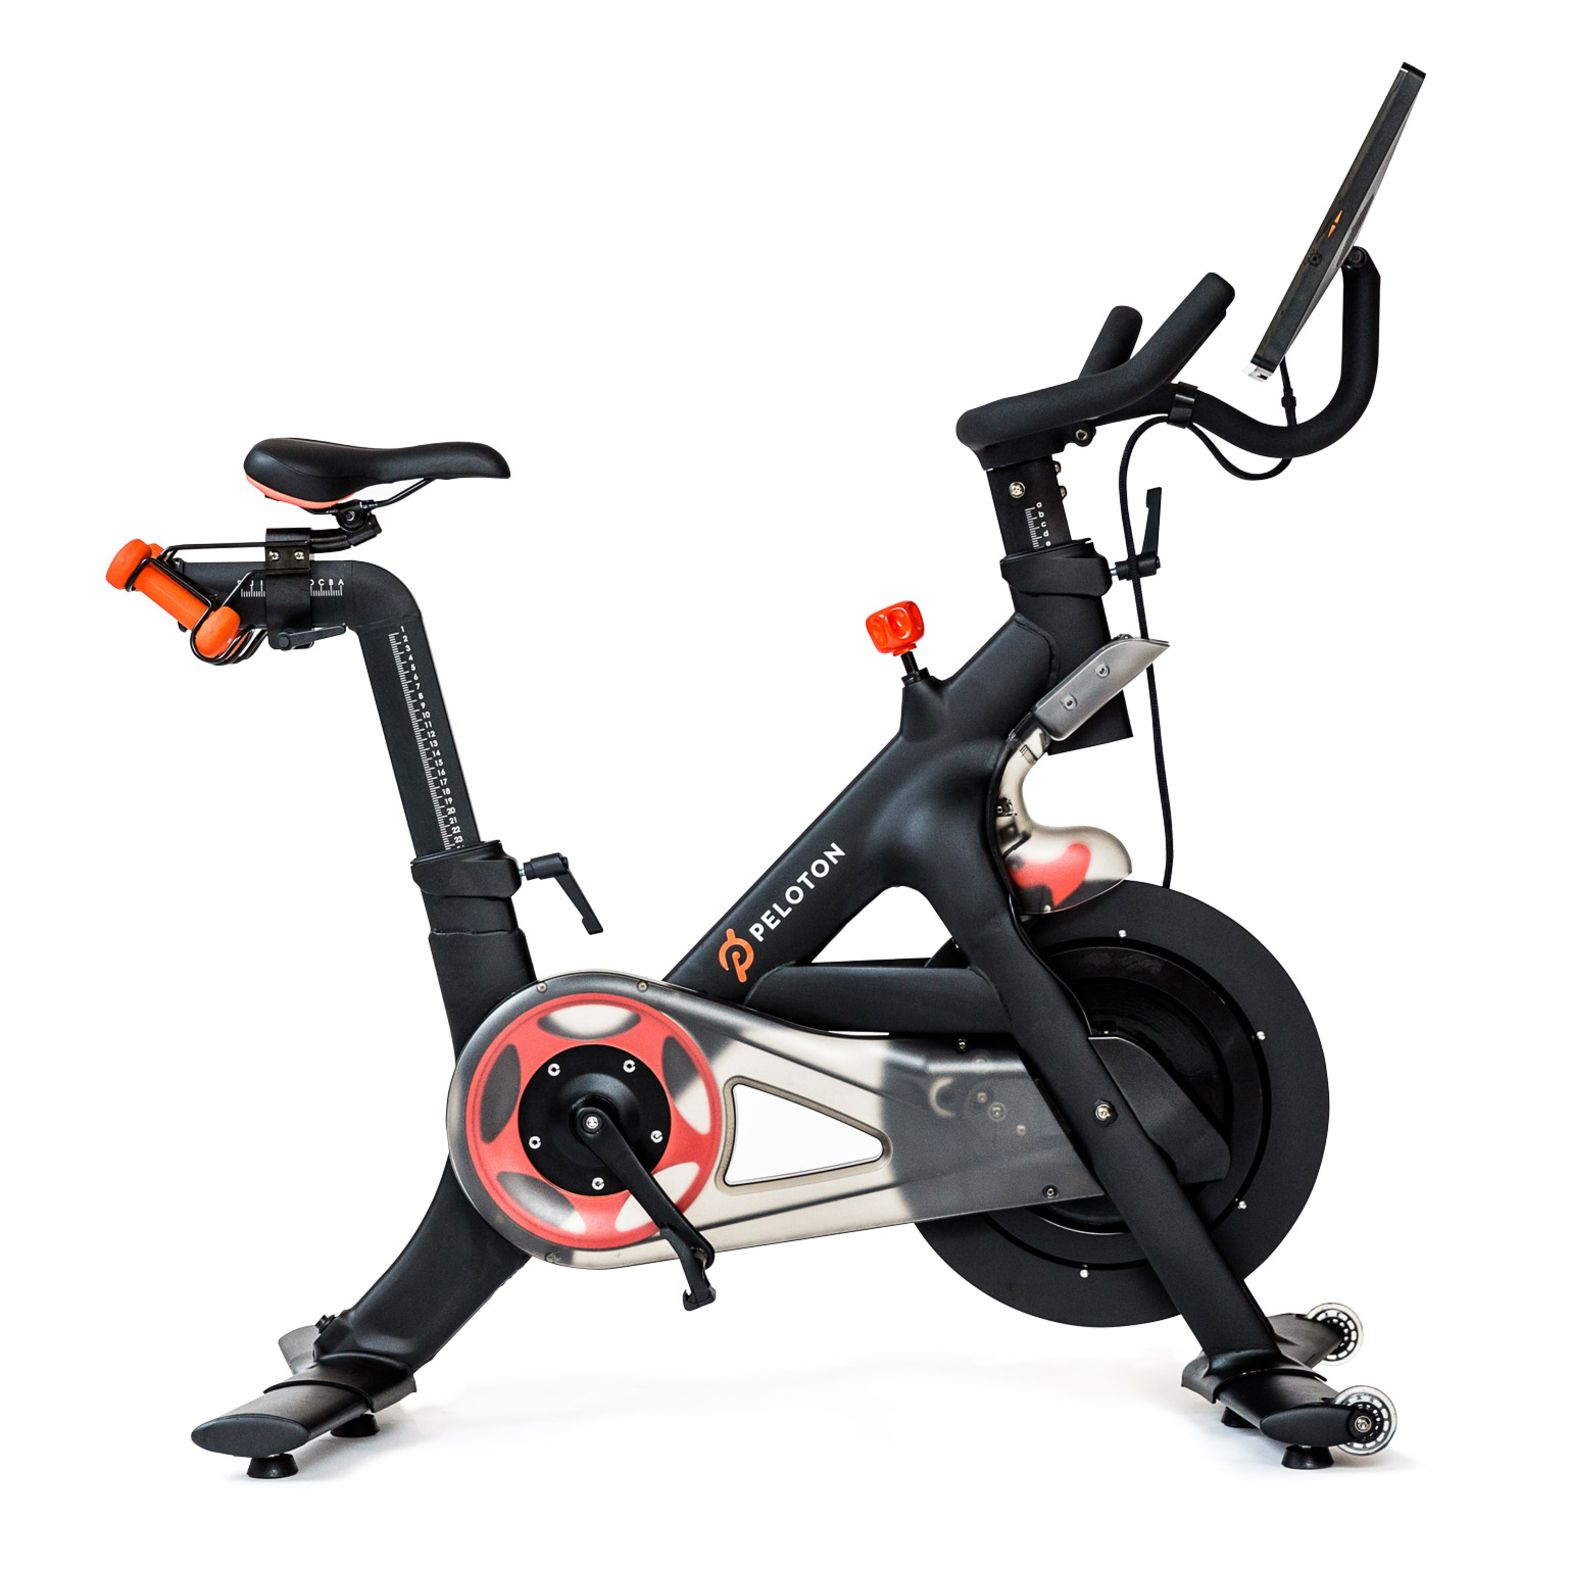 Check Out The Indoor Exercise Bikes With Live Streaming Classes